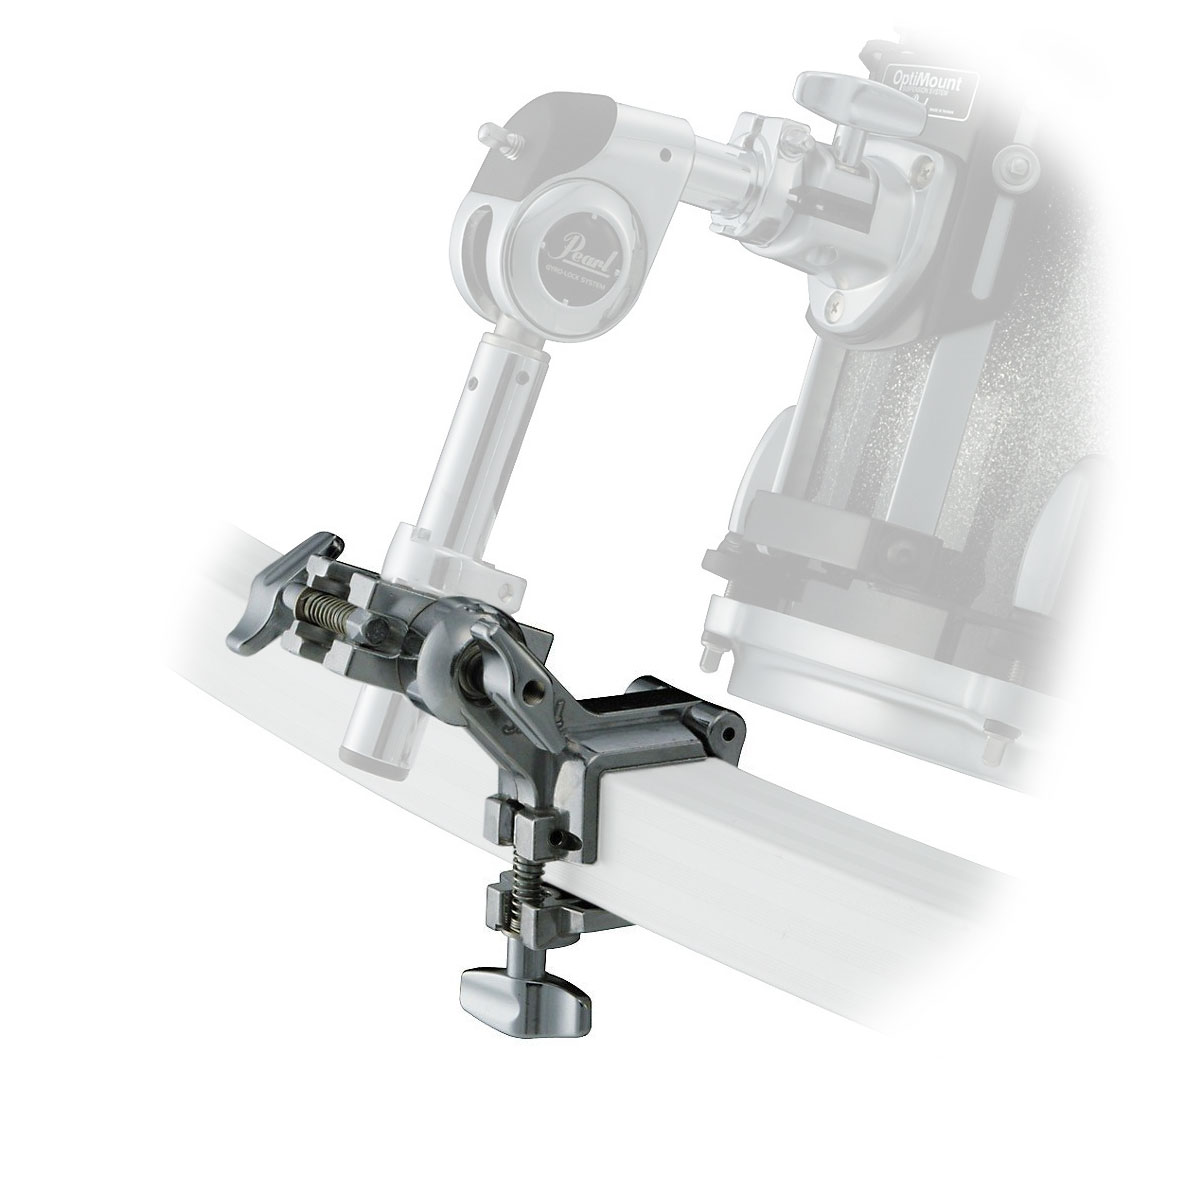 Pearl Pipe Clamp, Tilting System